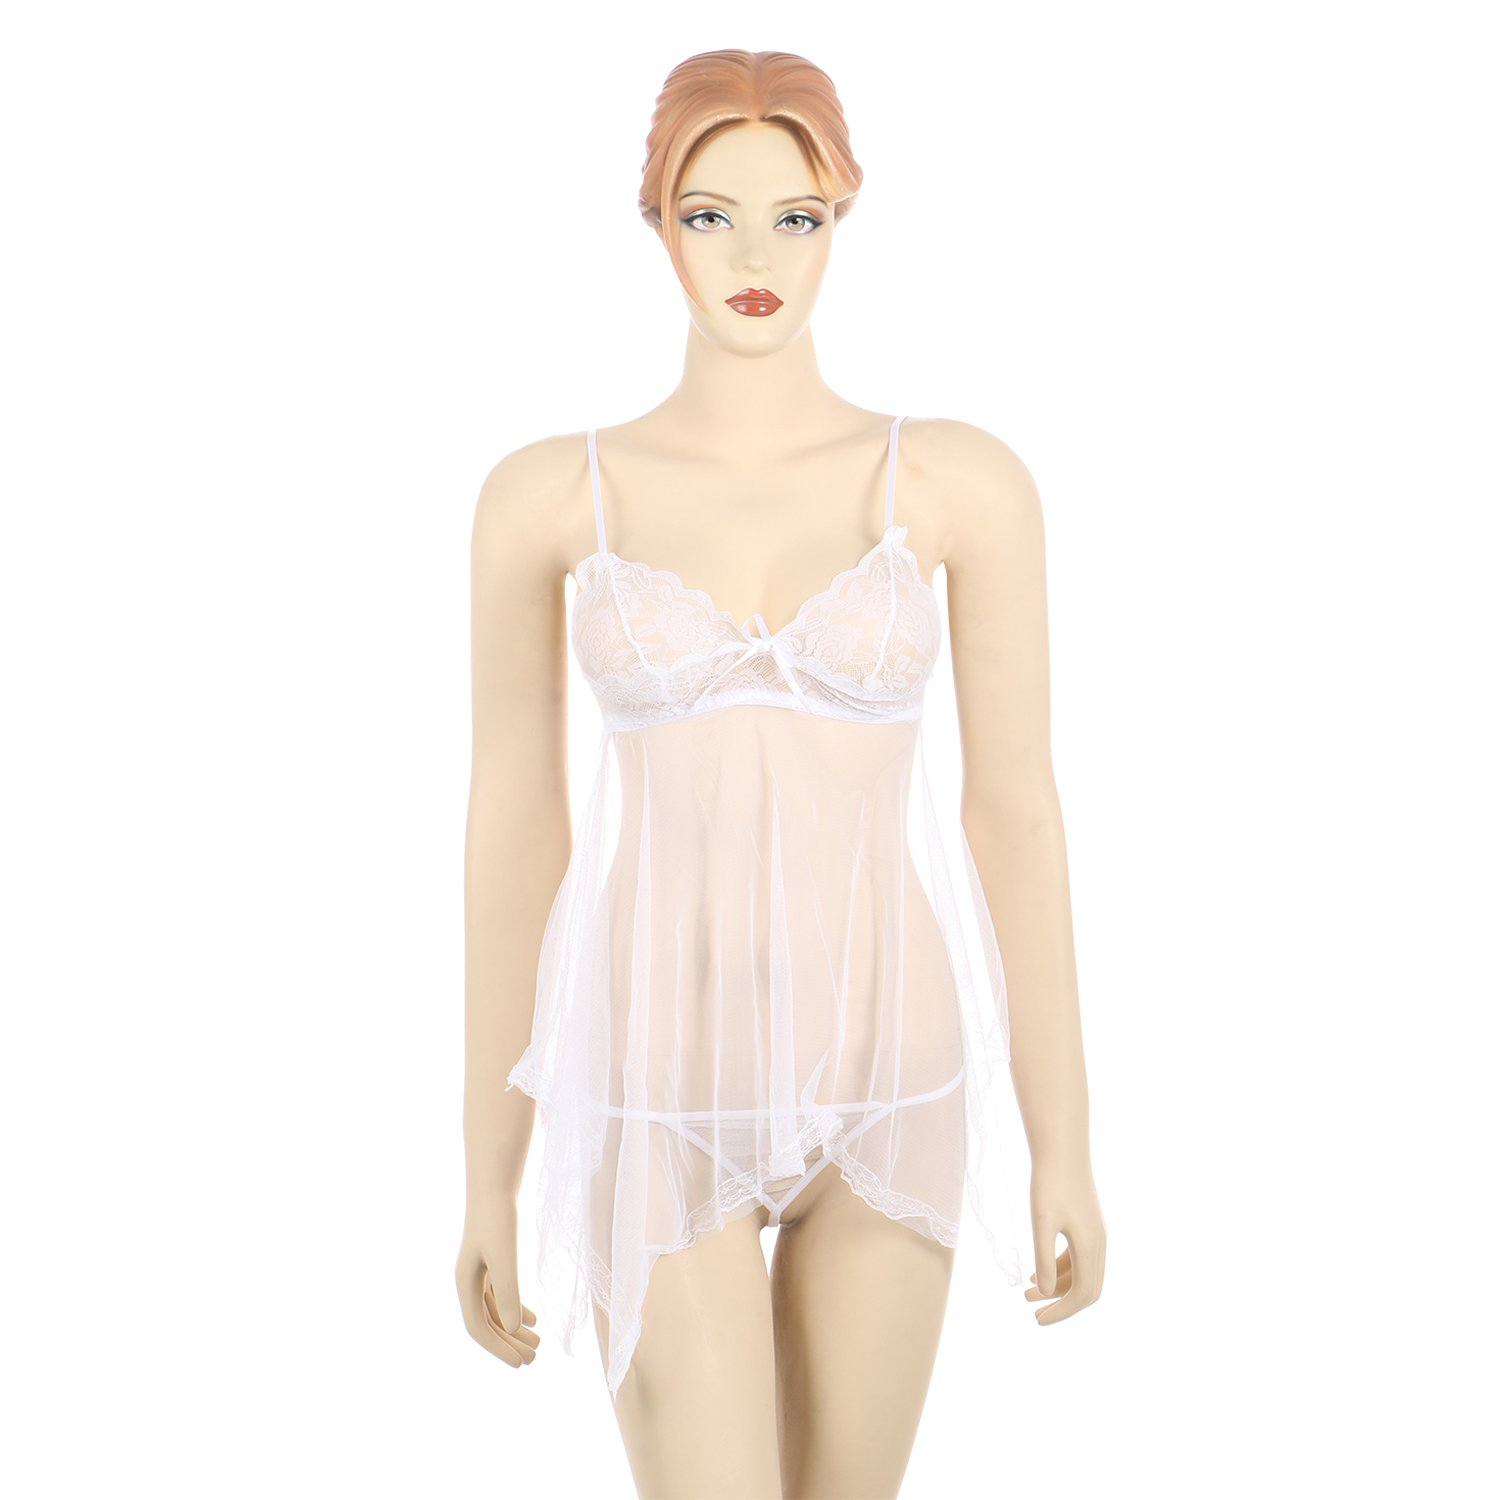 540456f1ac TIMI Latest Sexy White Solid & Patchwork Free Size Women's Babydoll Sexy  Honeymoon Lingerie For Women / Ladies and Girls Nightwear Net Babydoll Dress  ...